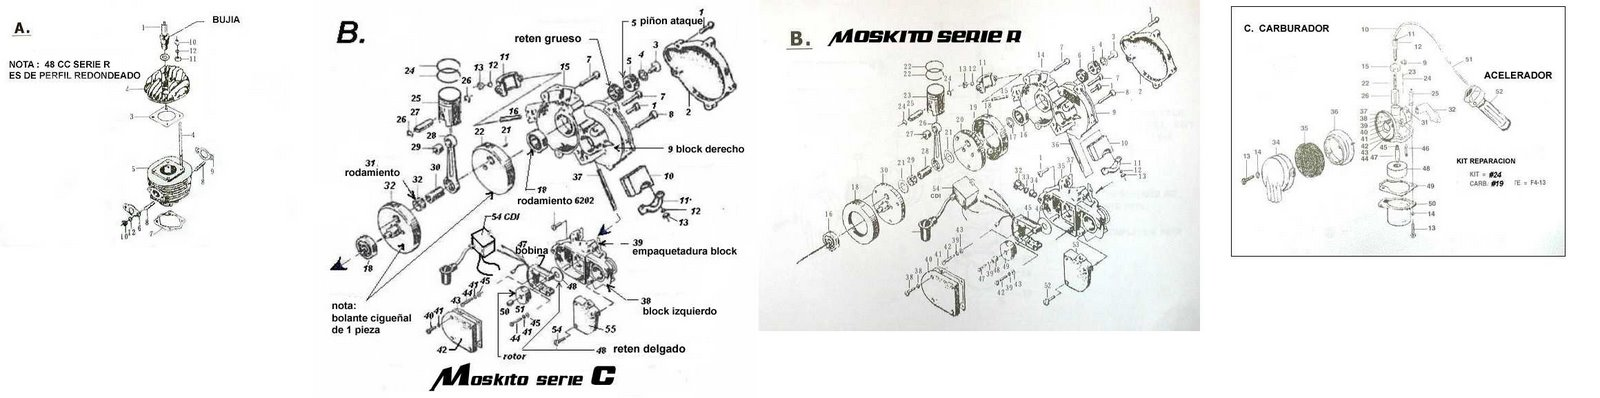 Motorized bicycles tutorials: 50cc motorized bicycle engine ...